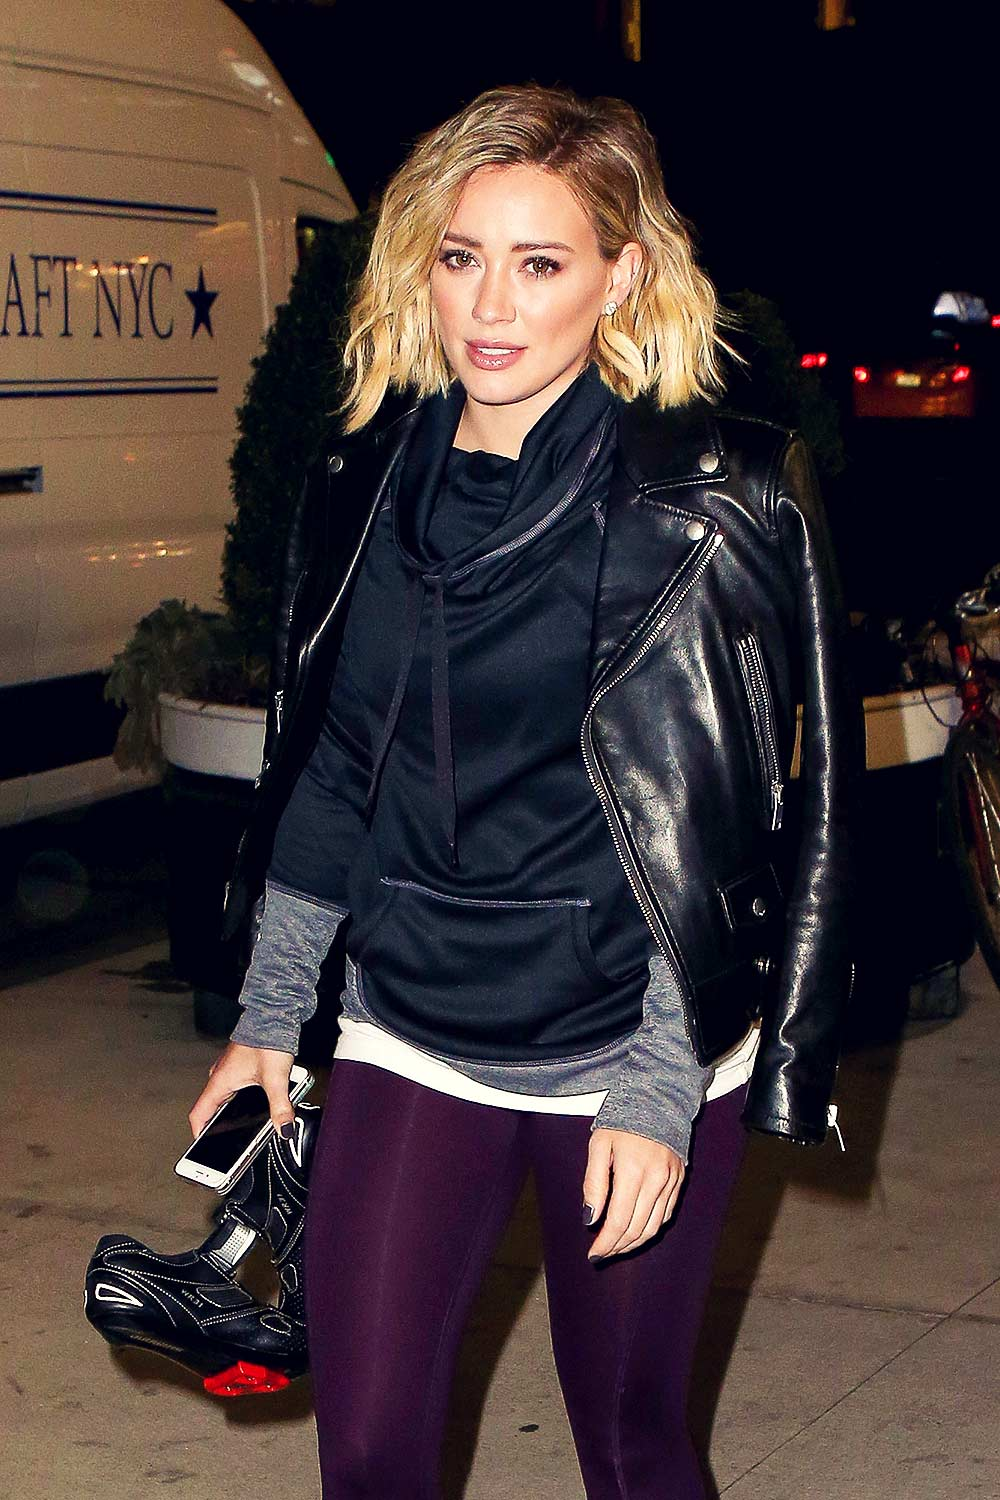 Hilary Duff out in New York